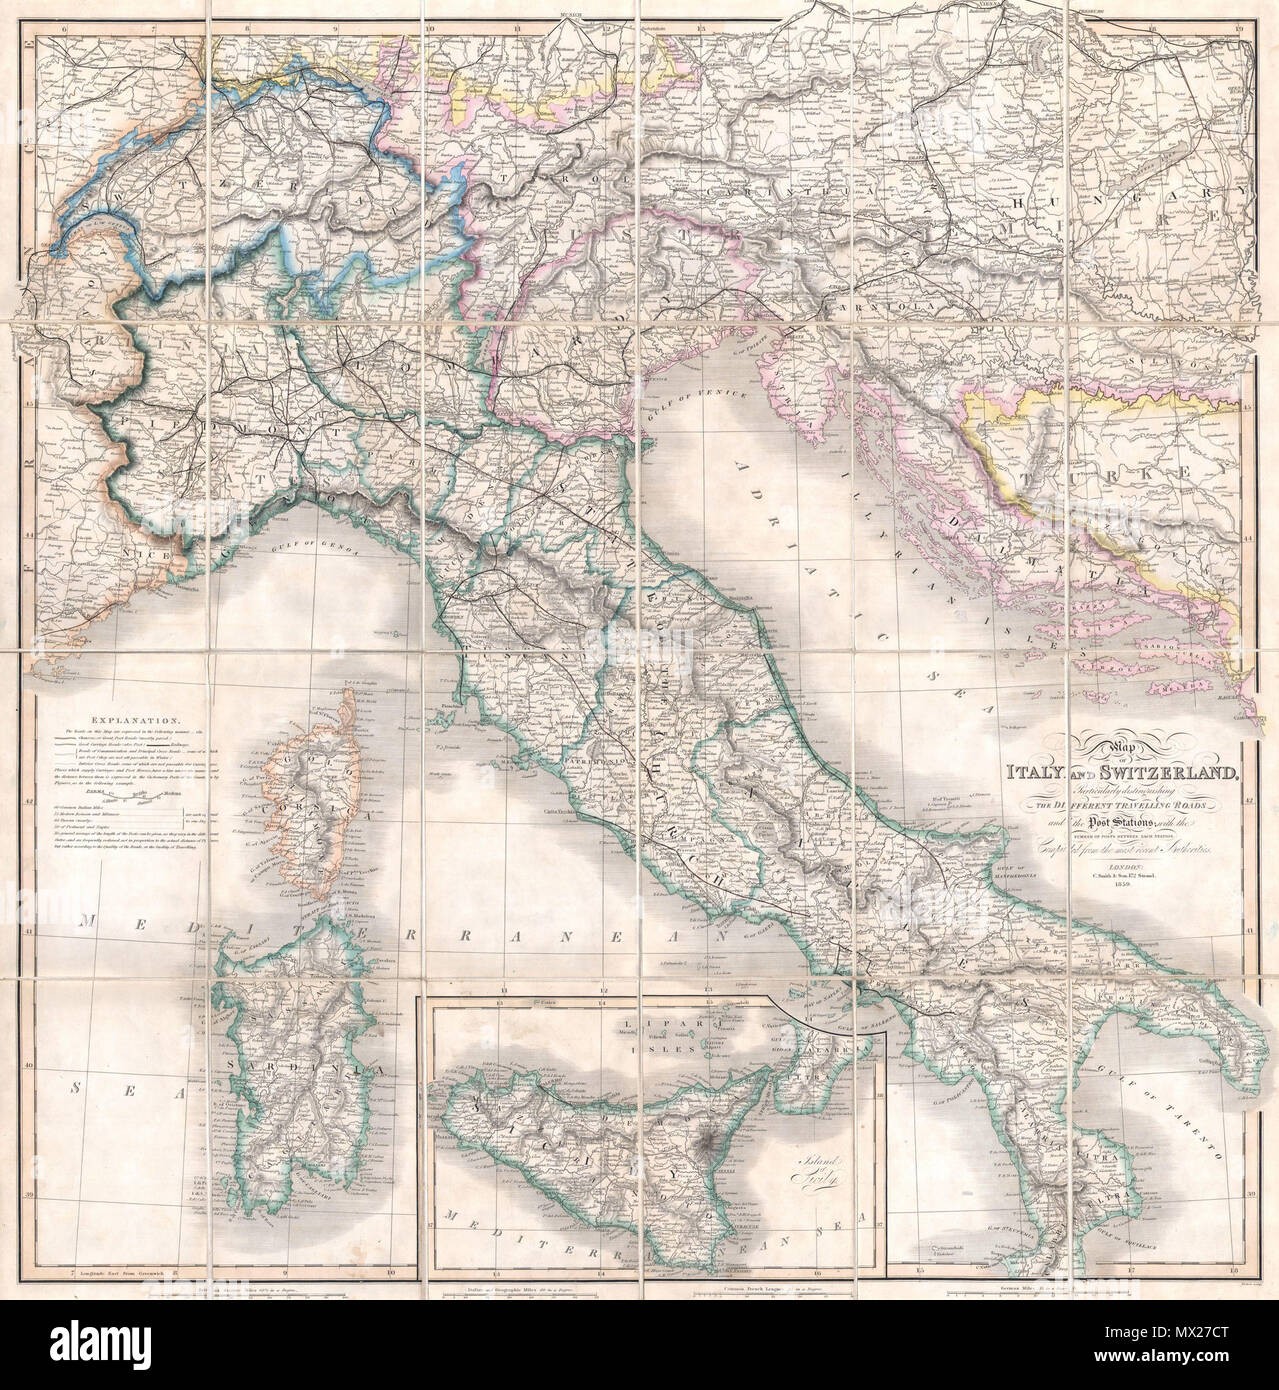 Map Of Italy Switzerland.Map Of Italy And Switzerland Particularly Distinguishing The